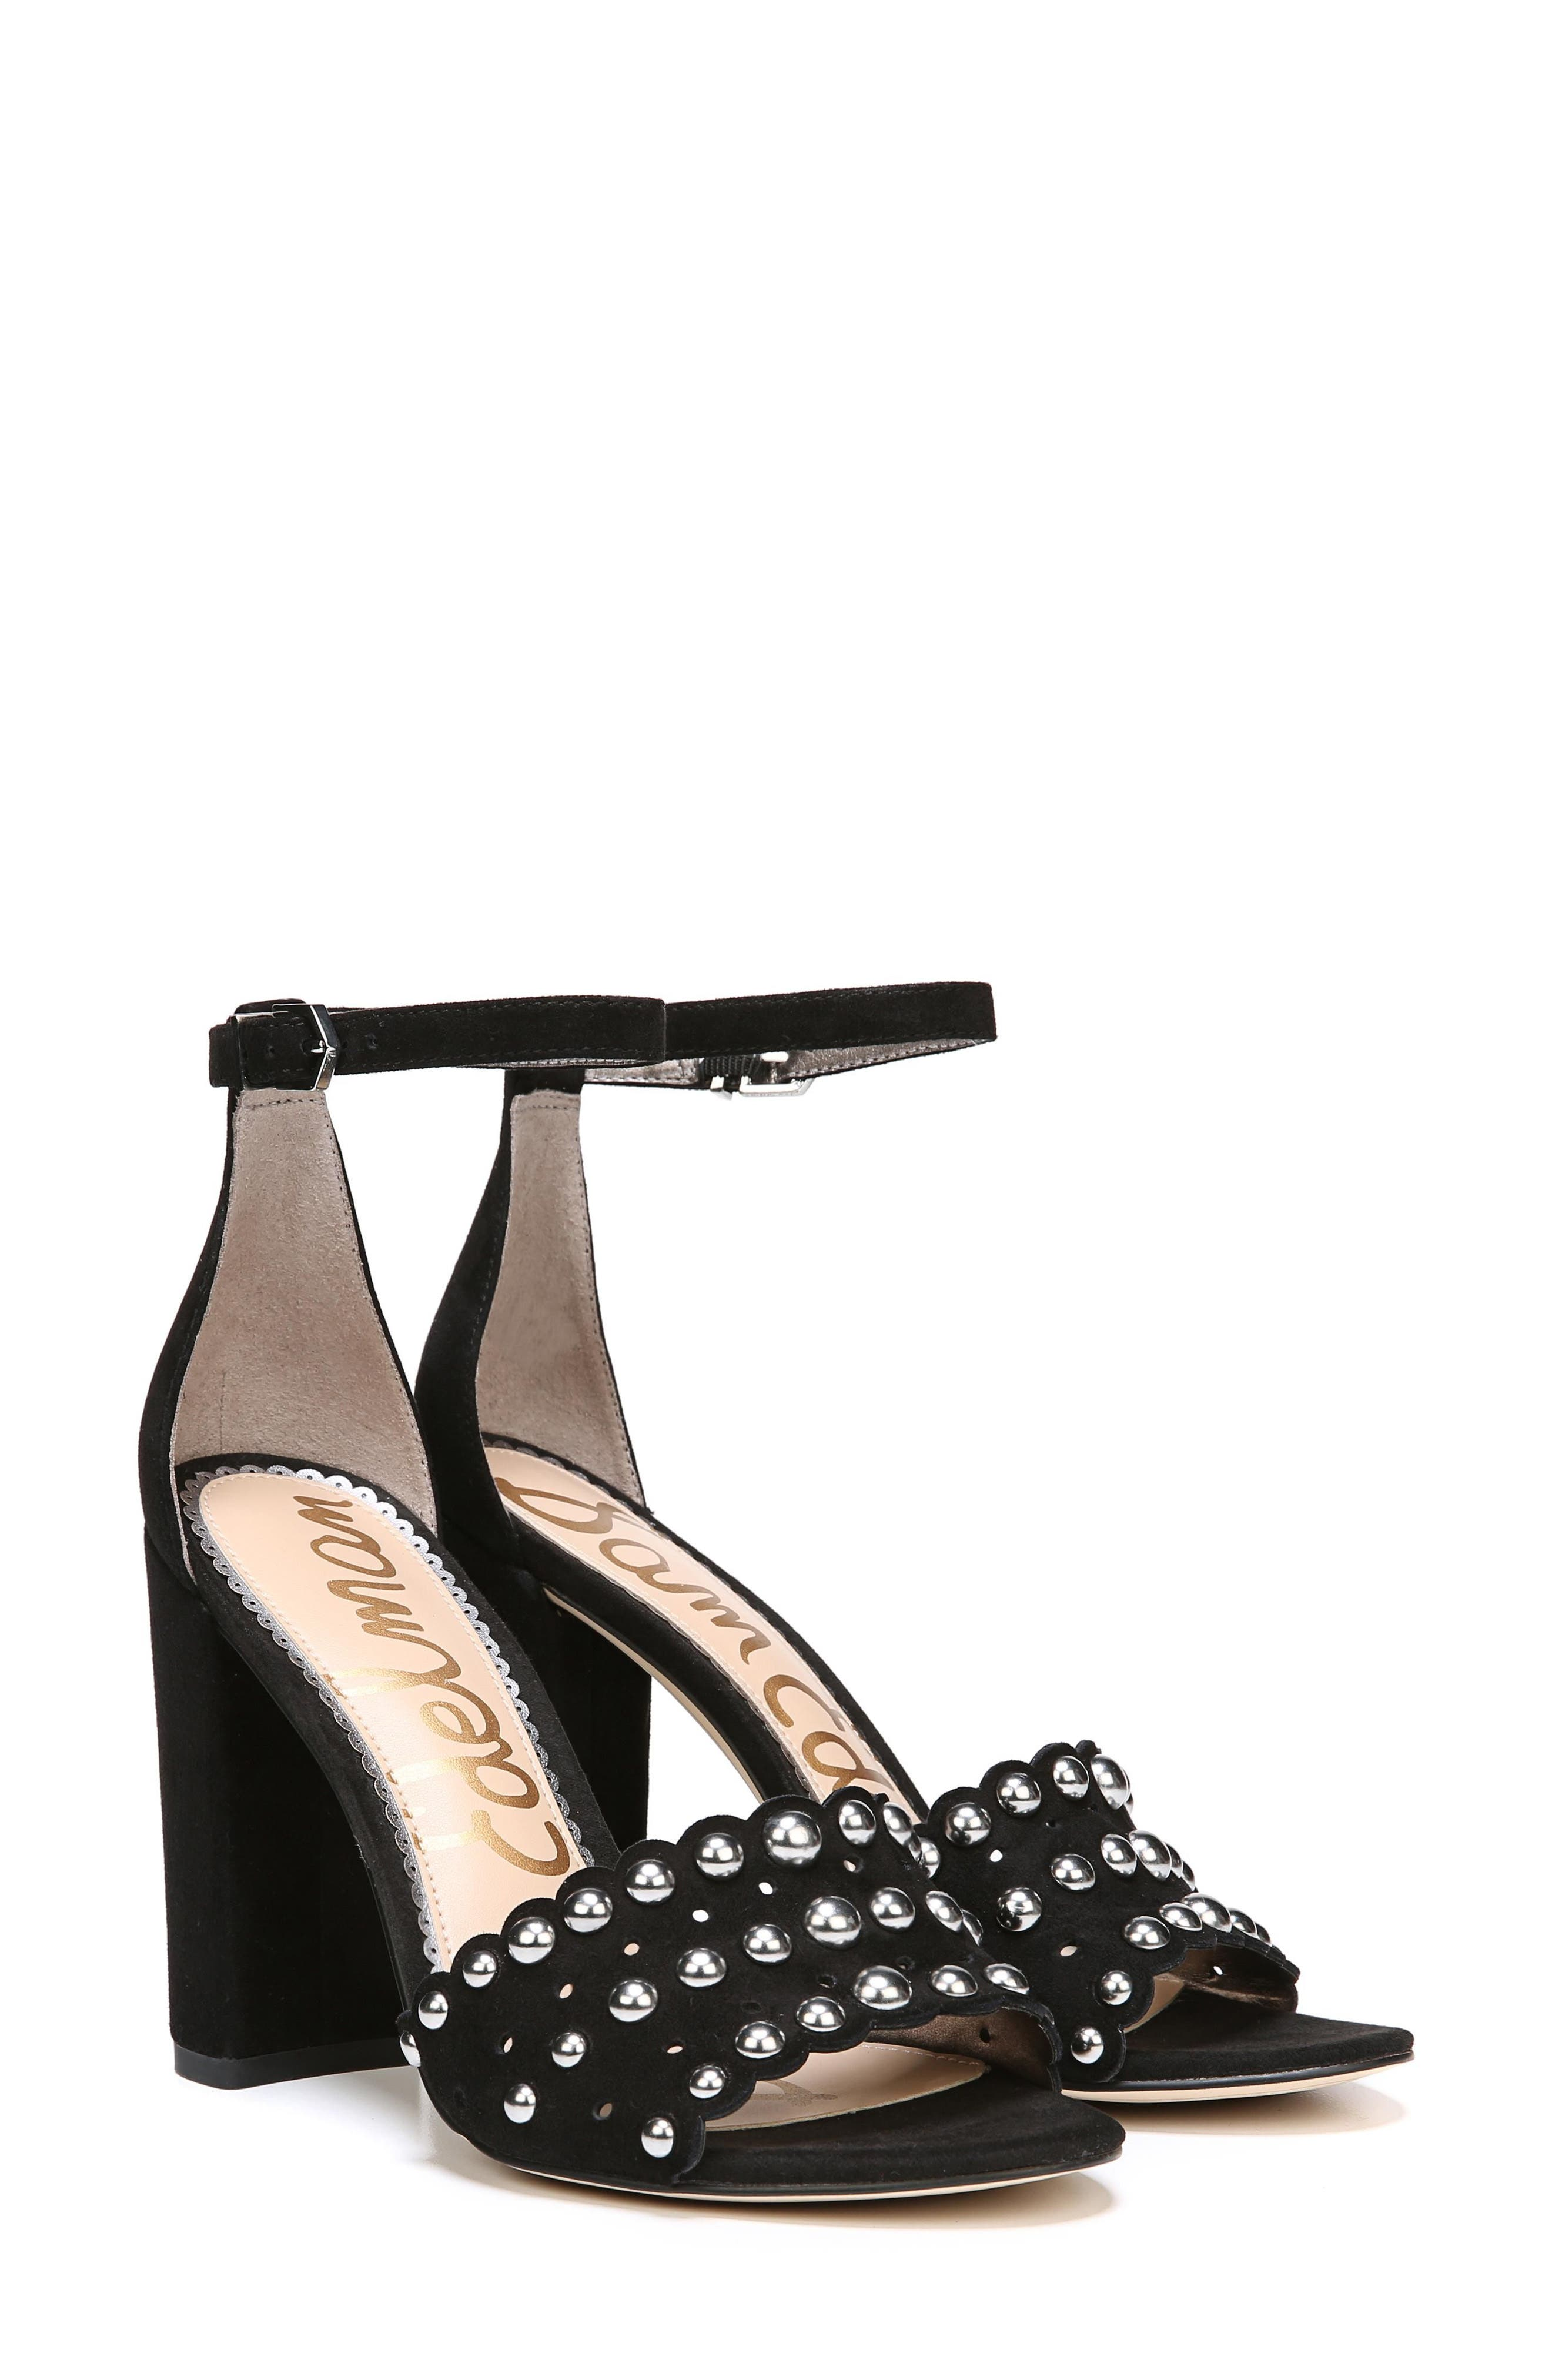 Yaria Studded Block Heel Sandal,                             Main thumbnail 1, color,                             BLACK SUEDE